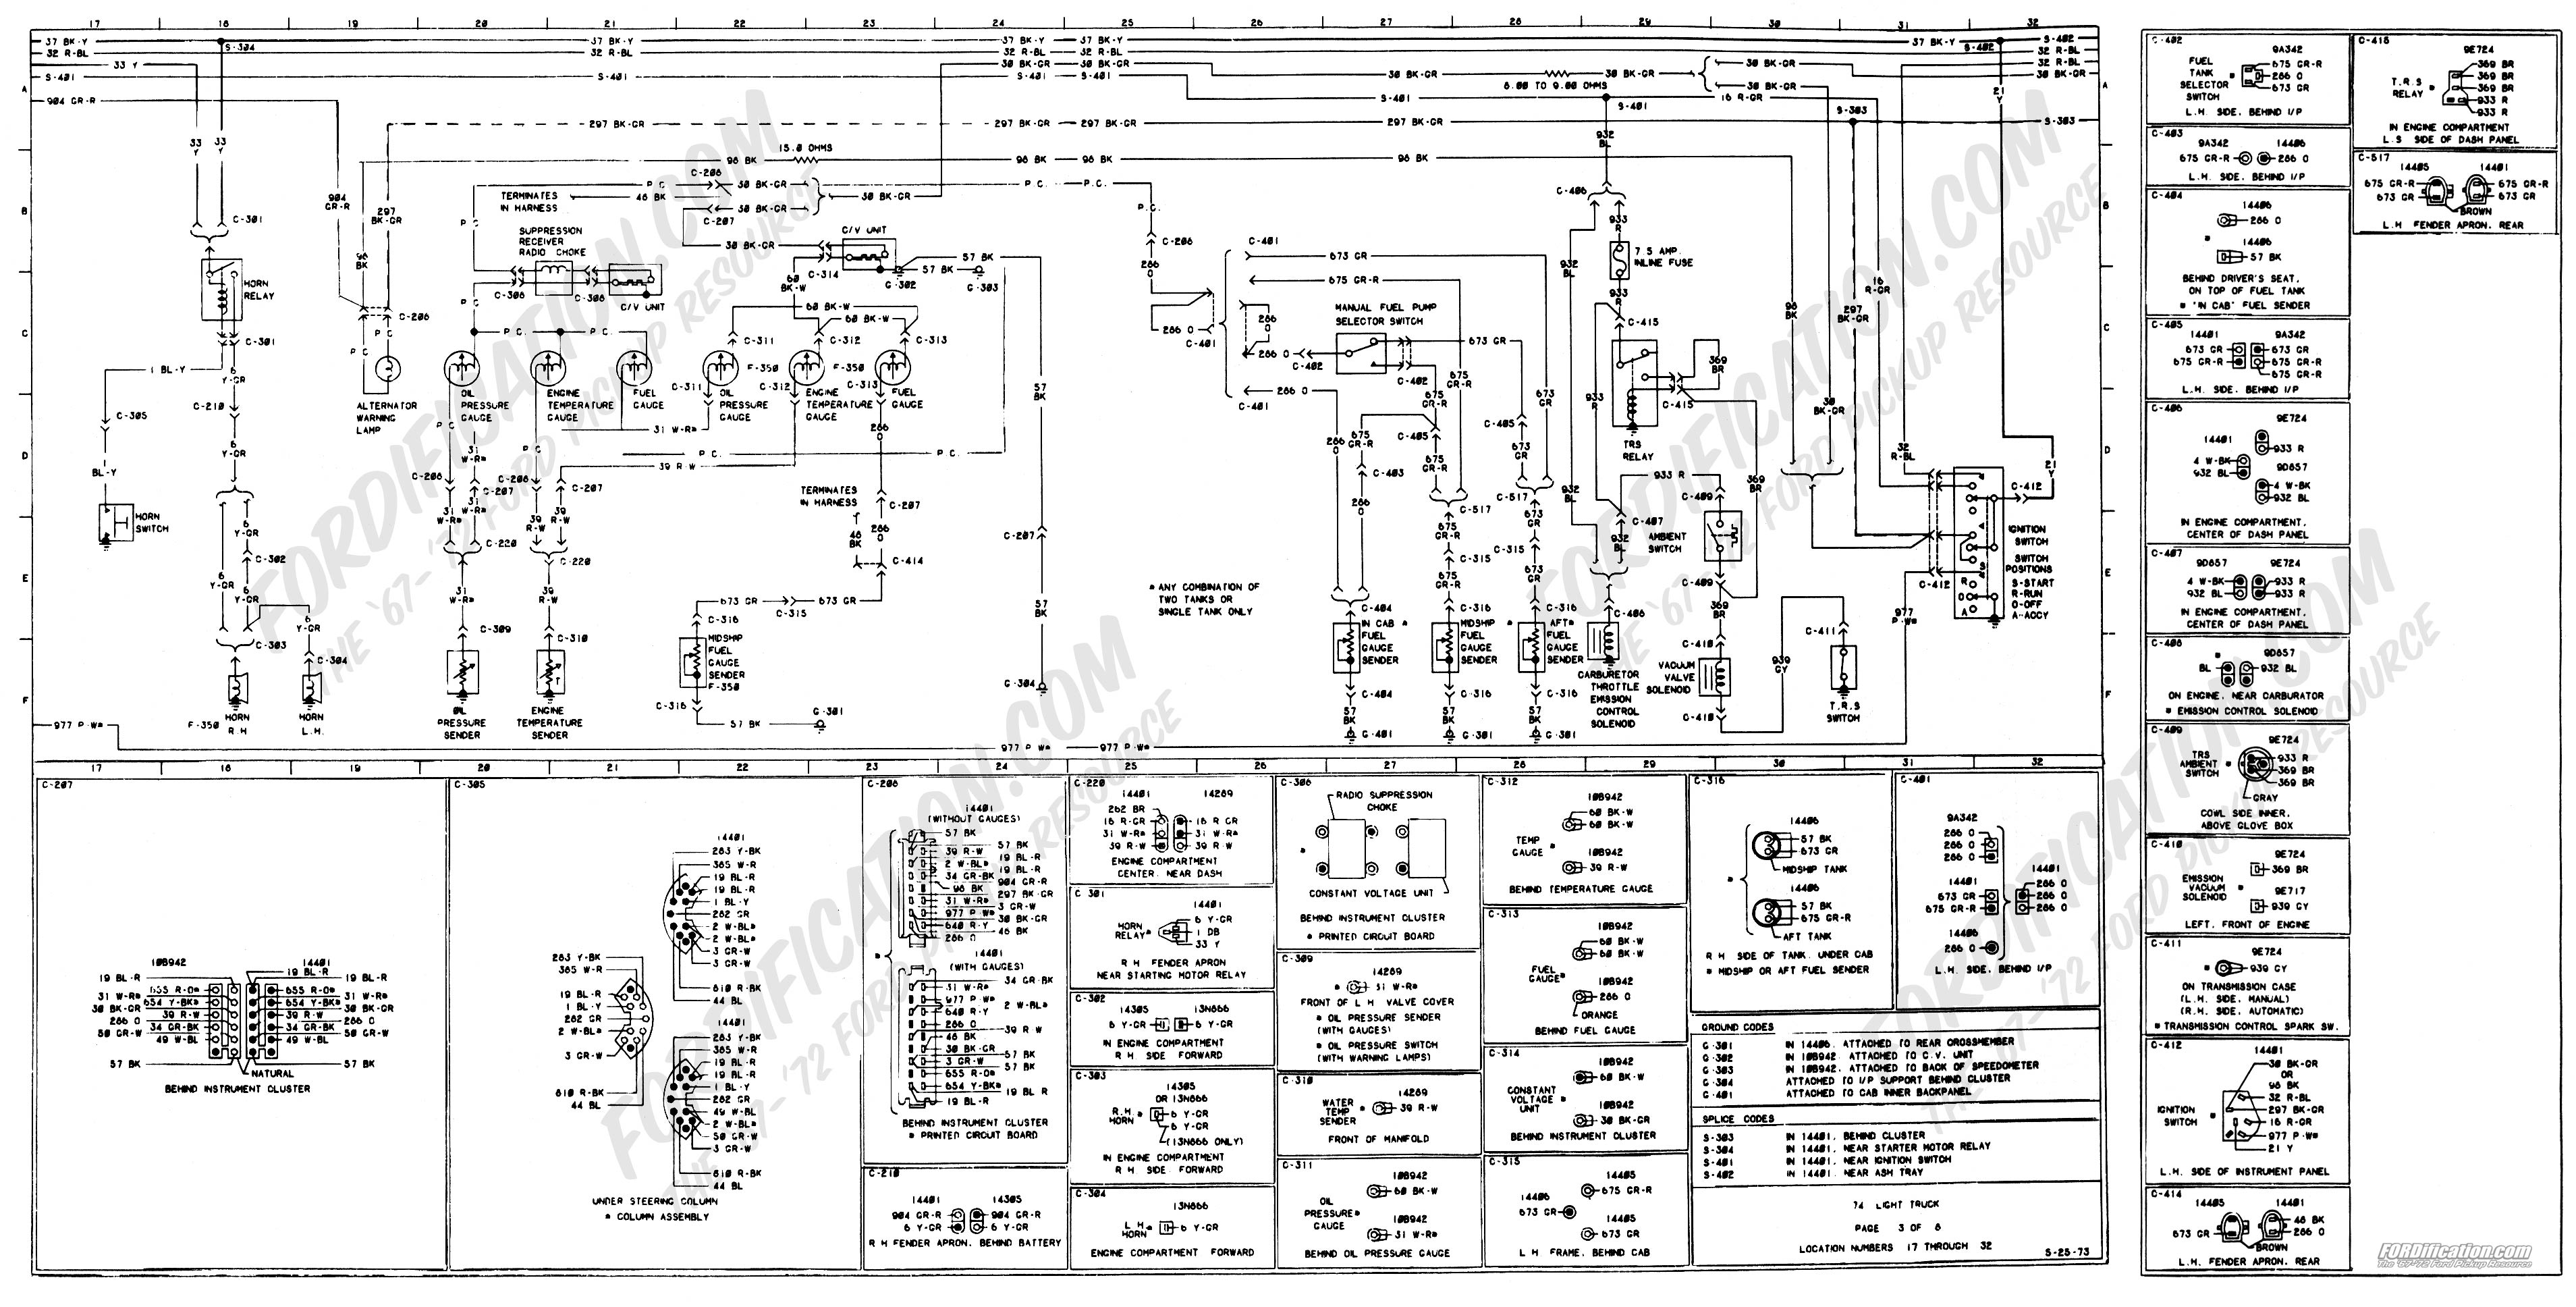 wiring_74master_3of8 1973 1979 ford truck wiring diagrams & schematics fordification net 1979 ford bronco fuse box diagram at eliteediting.co